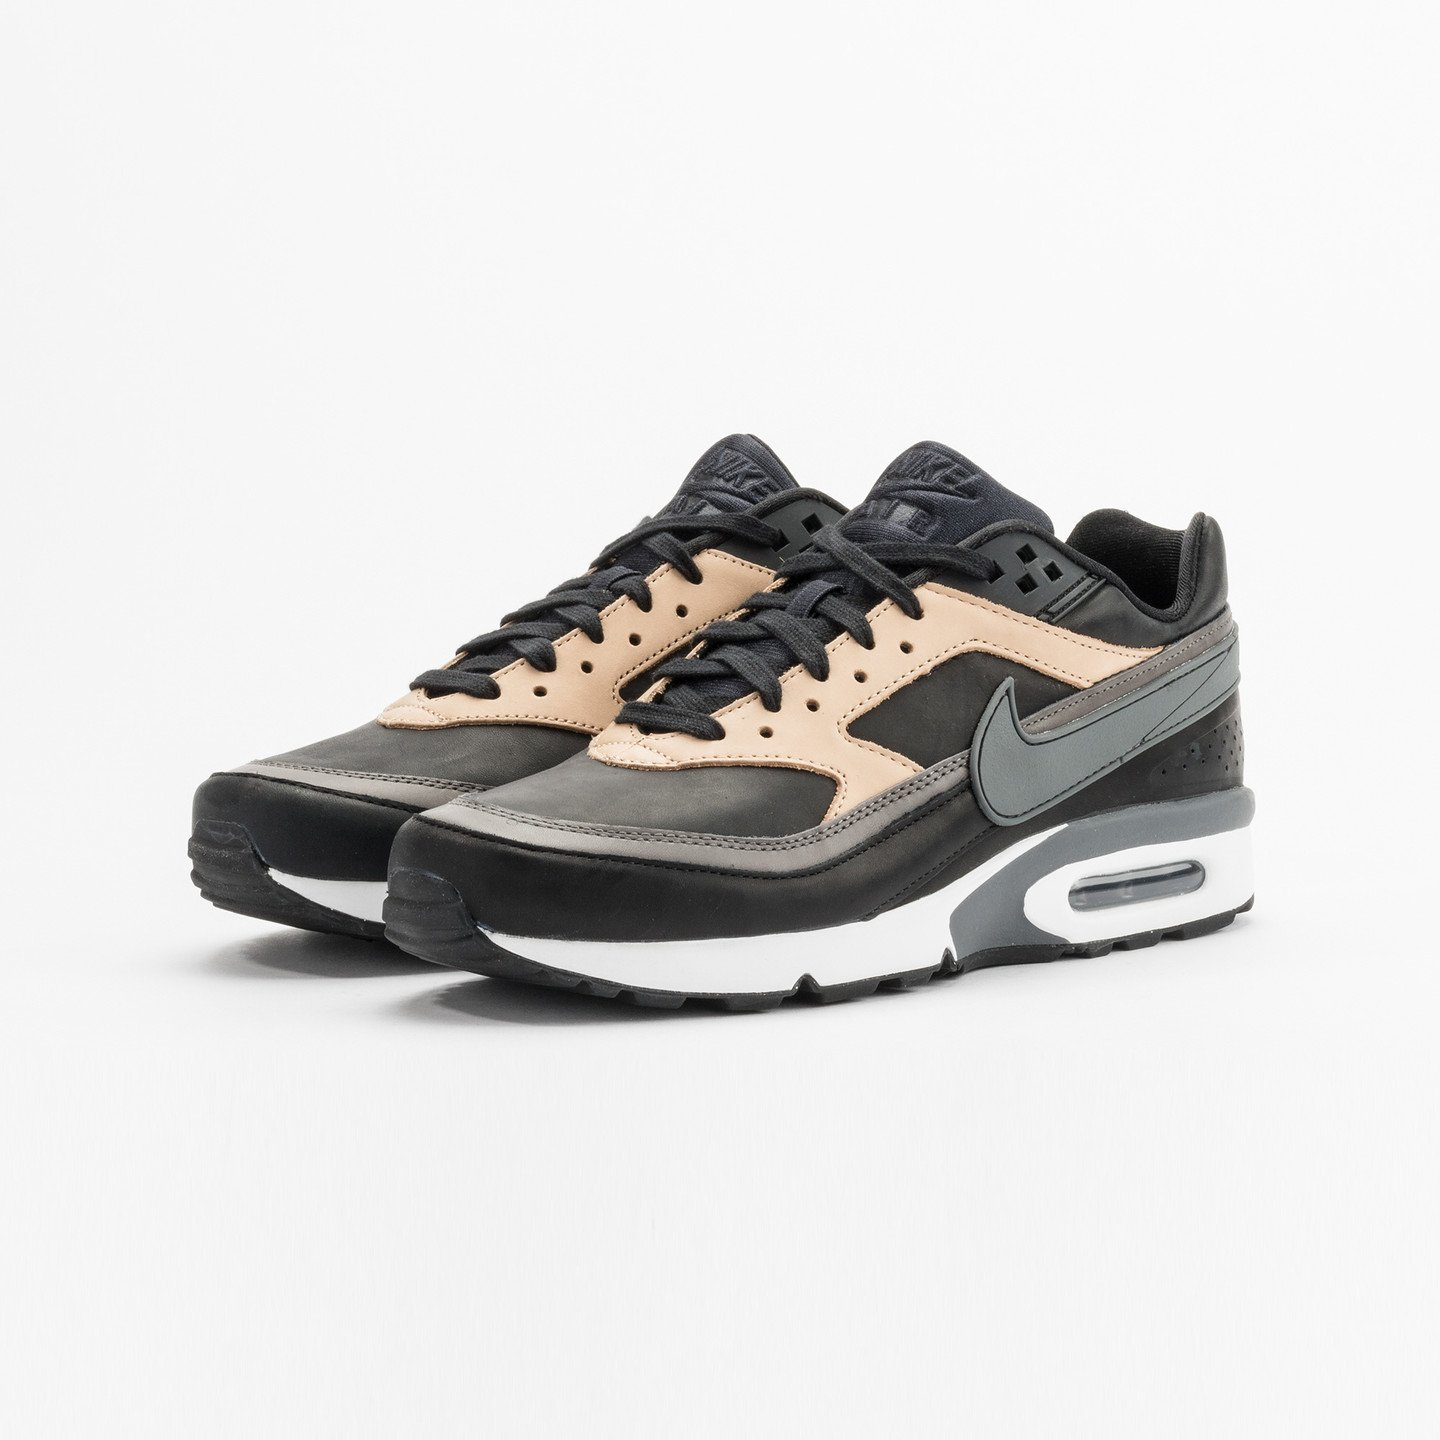 4b672540f2 Nike Air Max BW Premium Leather Black / Dark Grey / Vachetta 819523-001